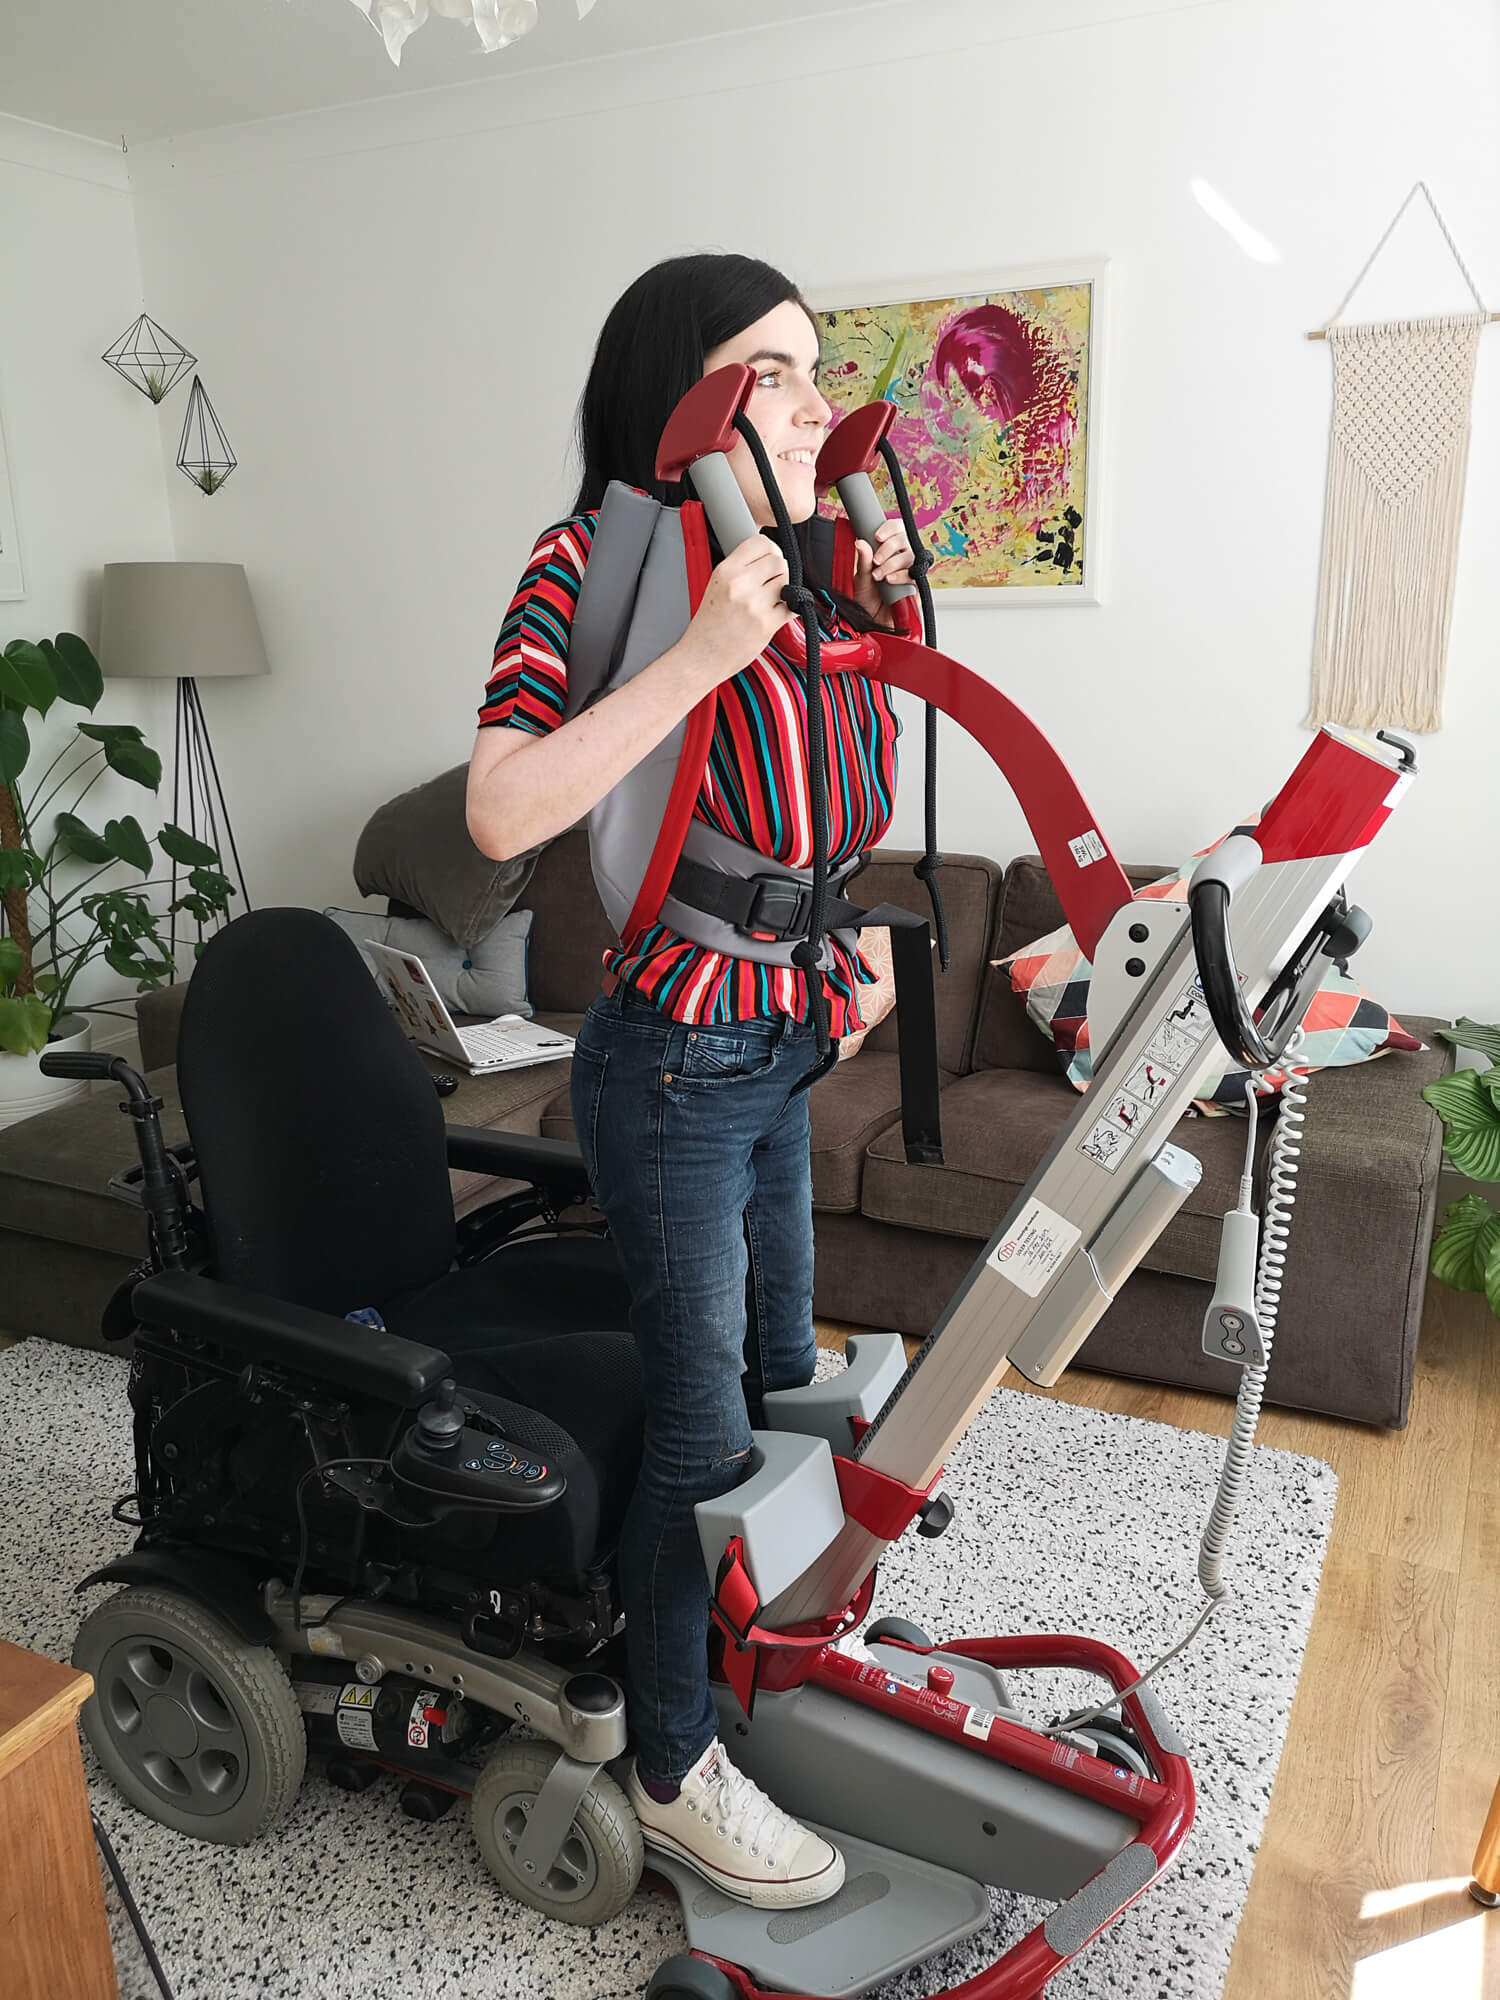 Emma standing up from her wheelchair using a Molift Quick Raiser sit-to-stand hoist. She is wearing a multicoloured striped shirt and is in her livingroom.